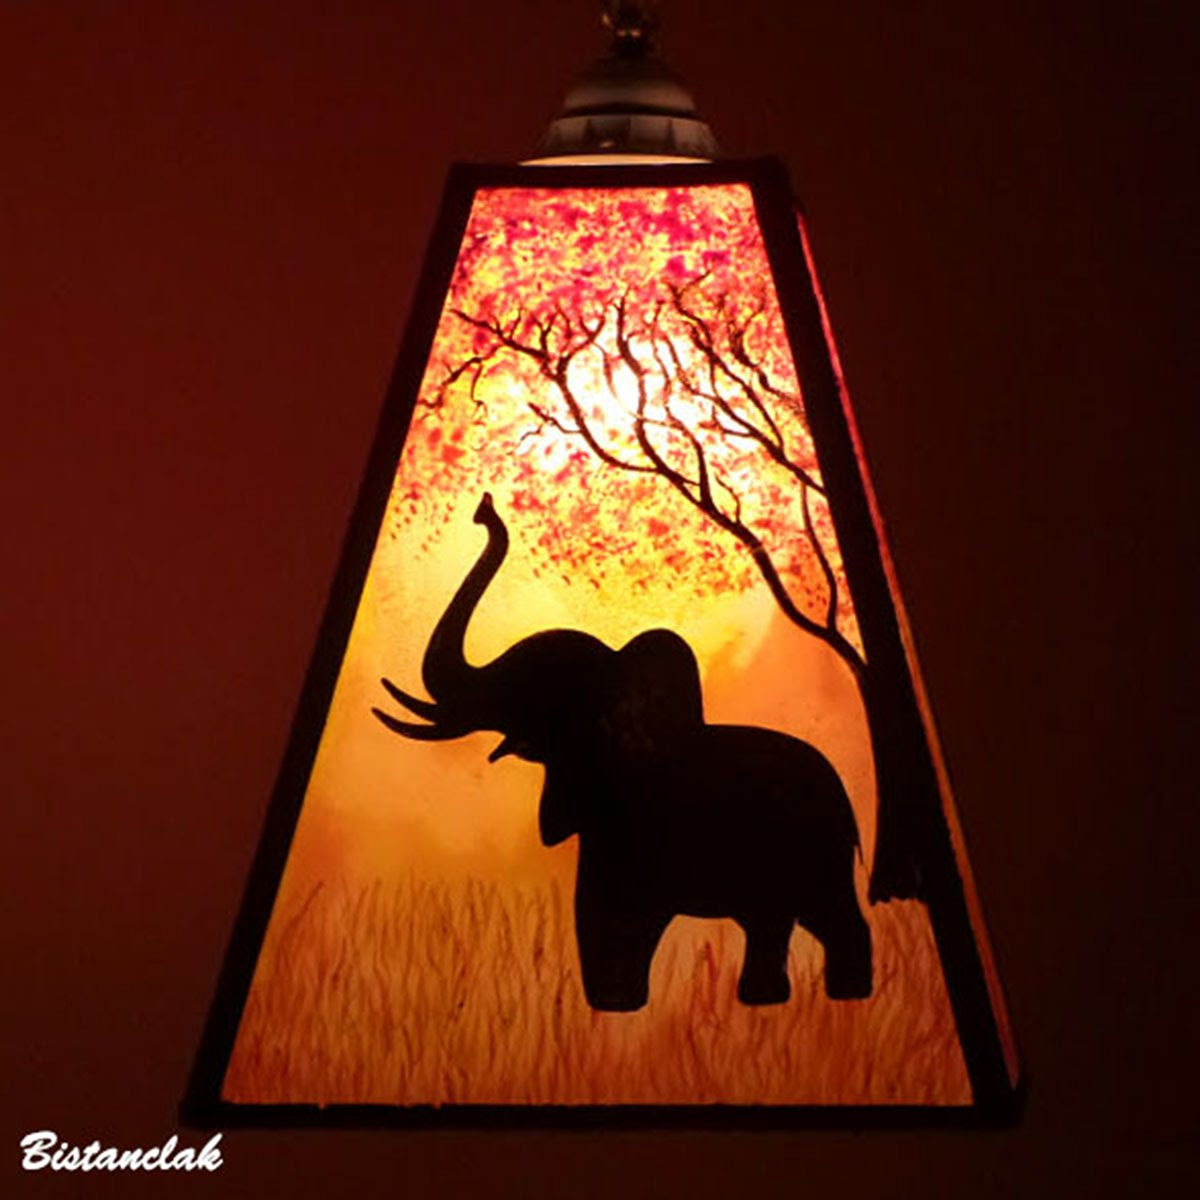 Lustre suspension forme trapeze de couleur jaune orange rouge motif arbre et elephant 12